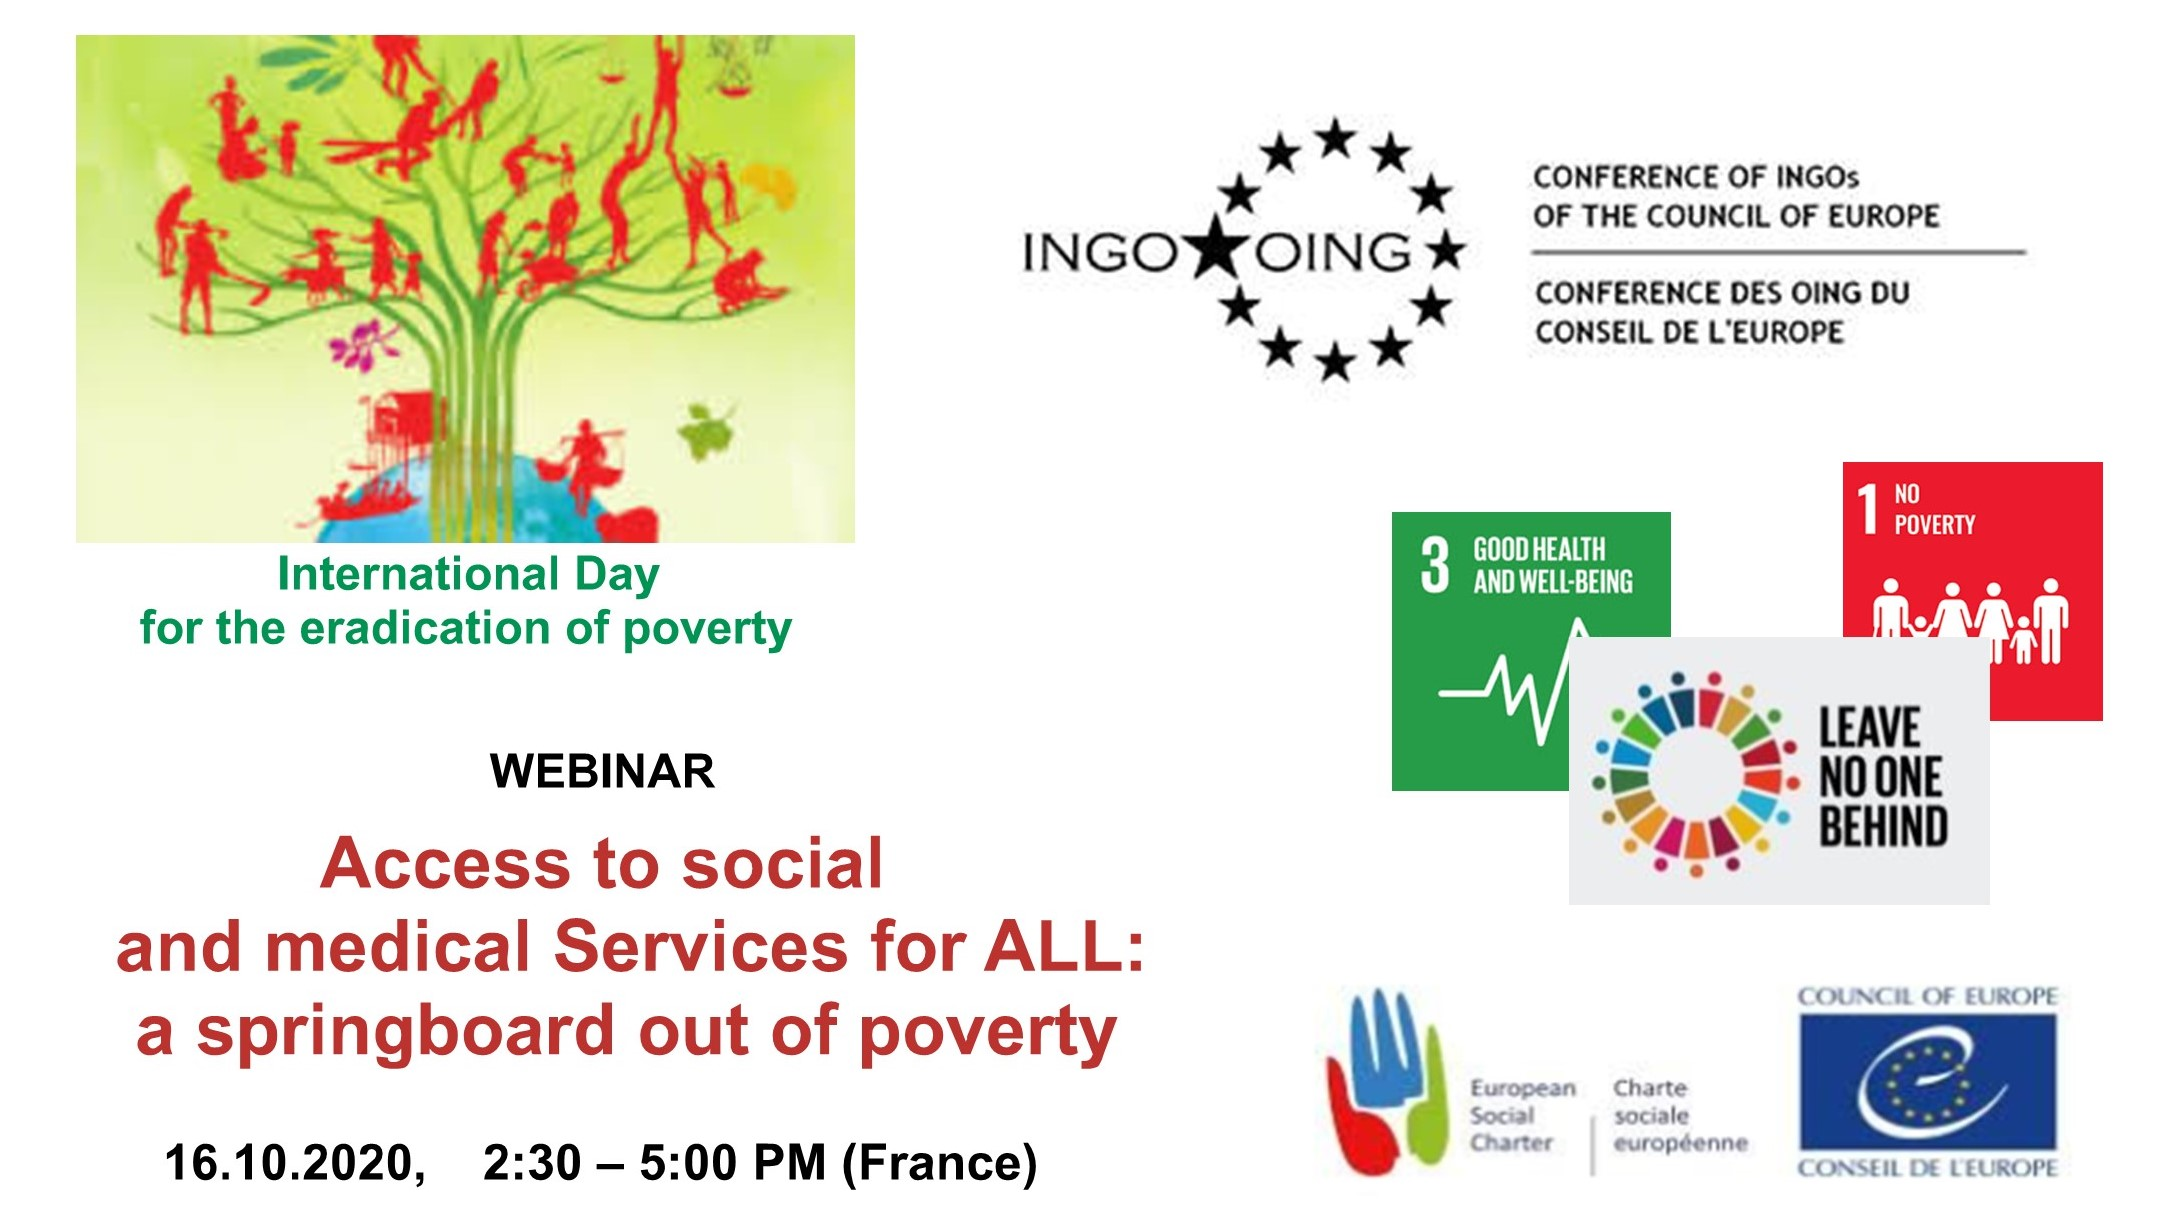 Webinar - International Day for the Eradication of Poverty